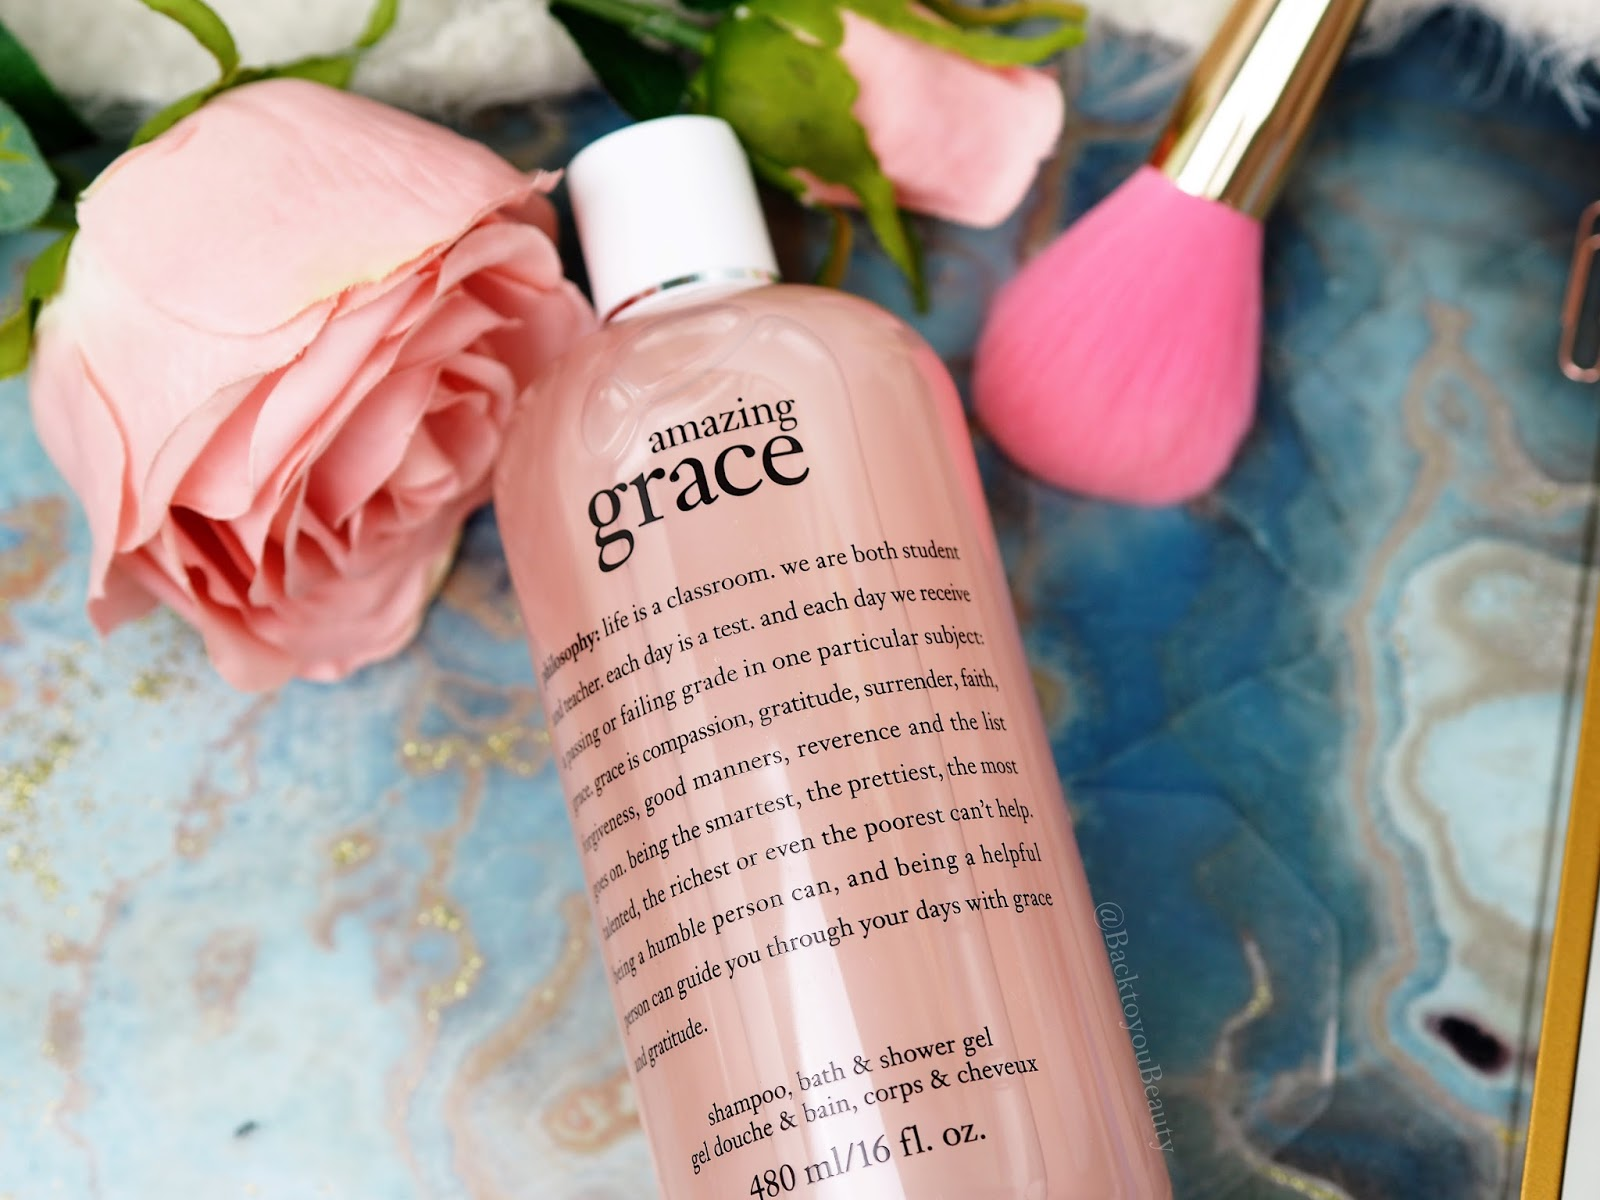 Amazing Grace Shampoo, Bath & Shower Gel 480ml